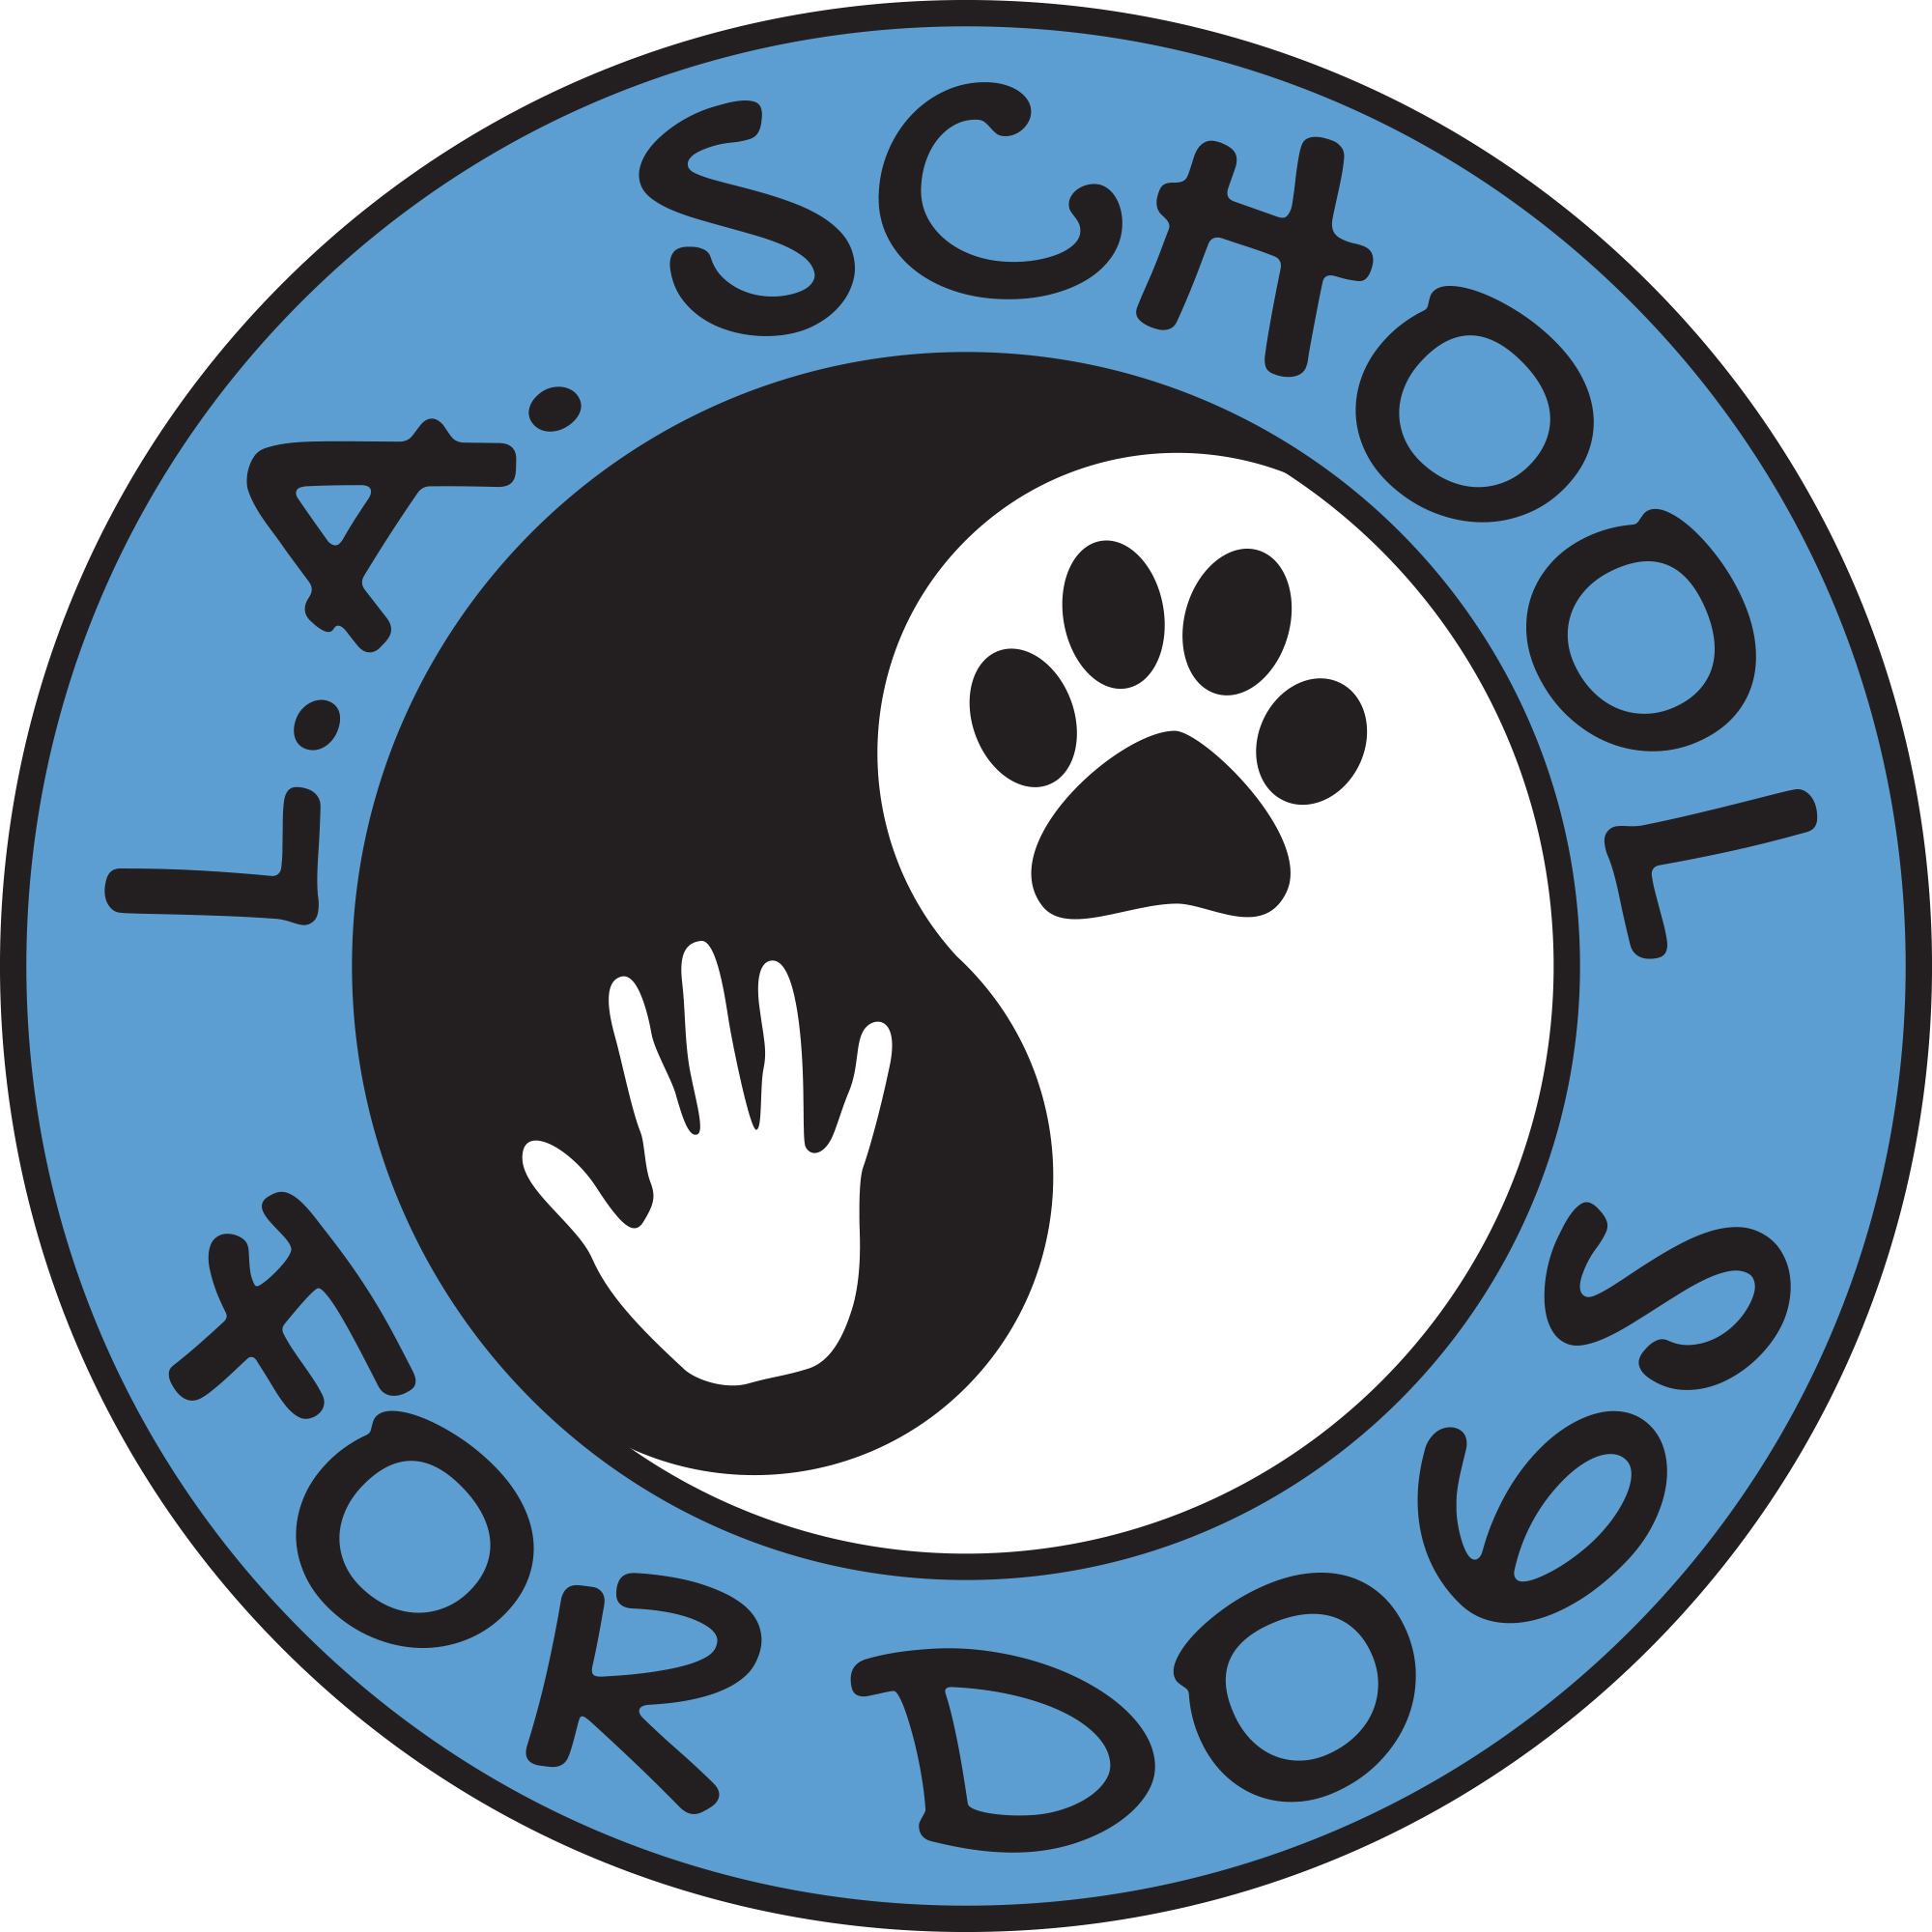 L.A. School for Dogs